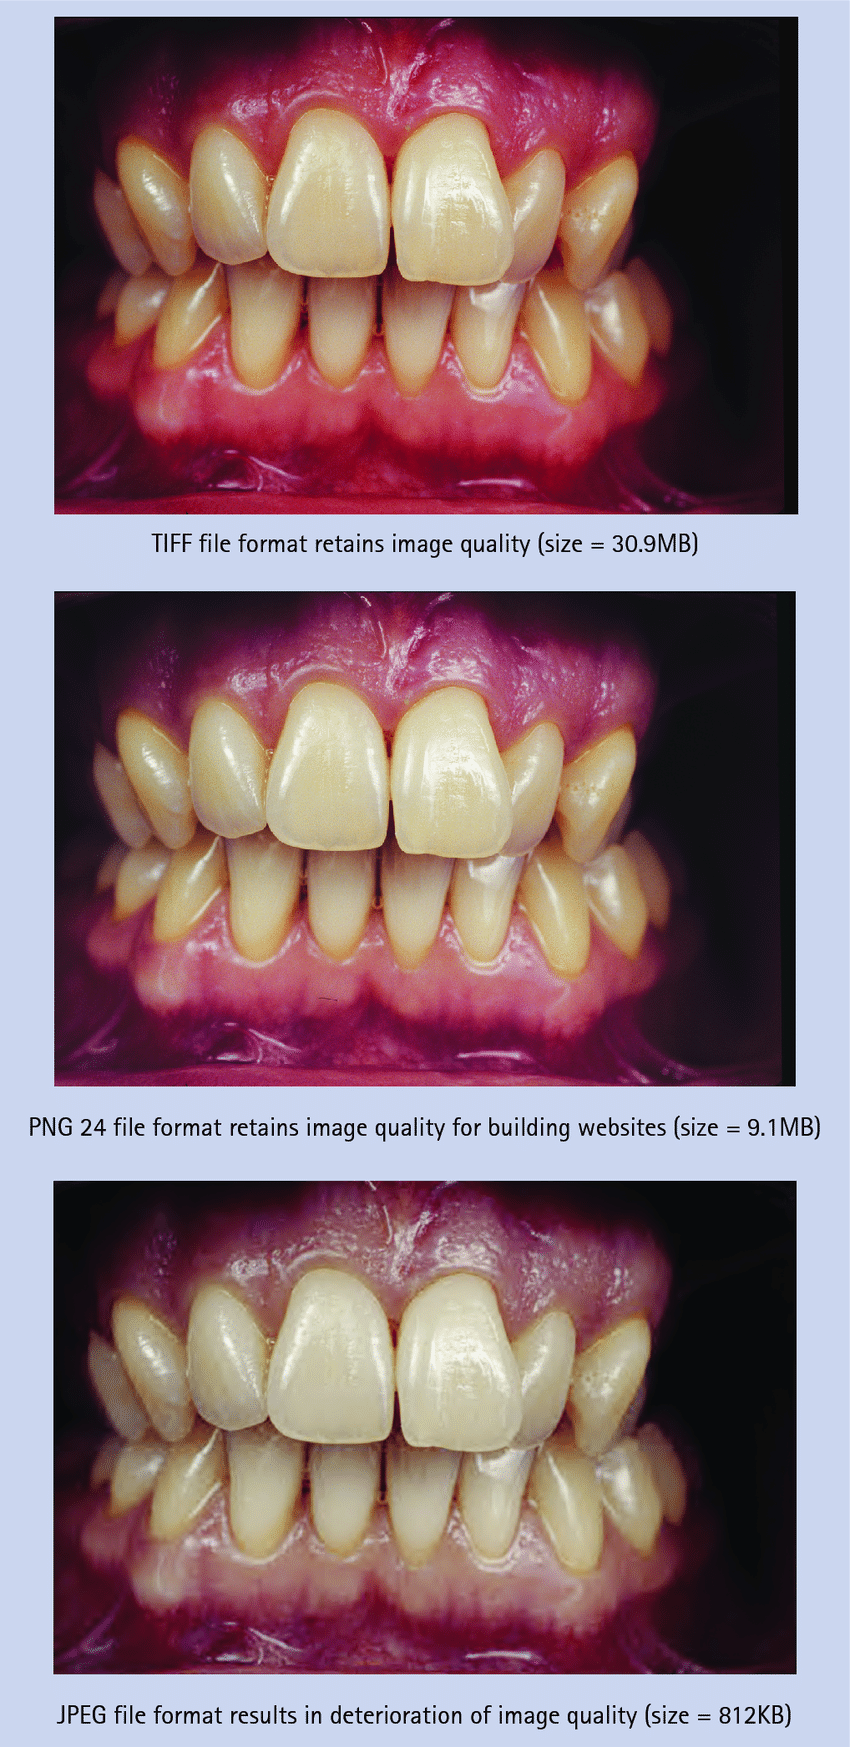 Comparison of an image saved as TIFF, PGN 24 and JPEG, with severe.